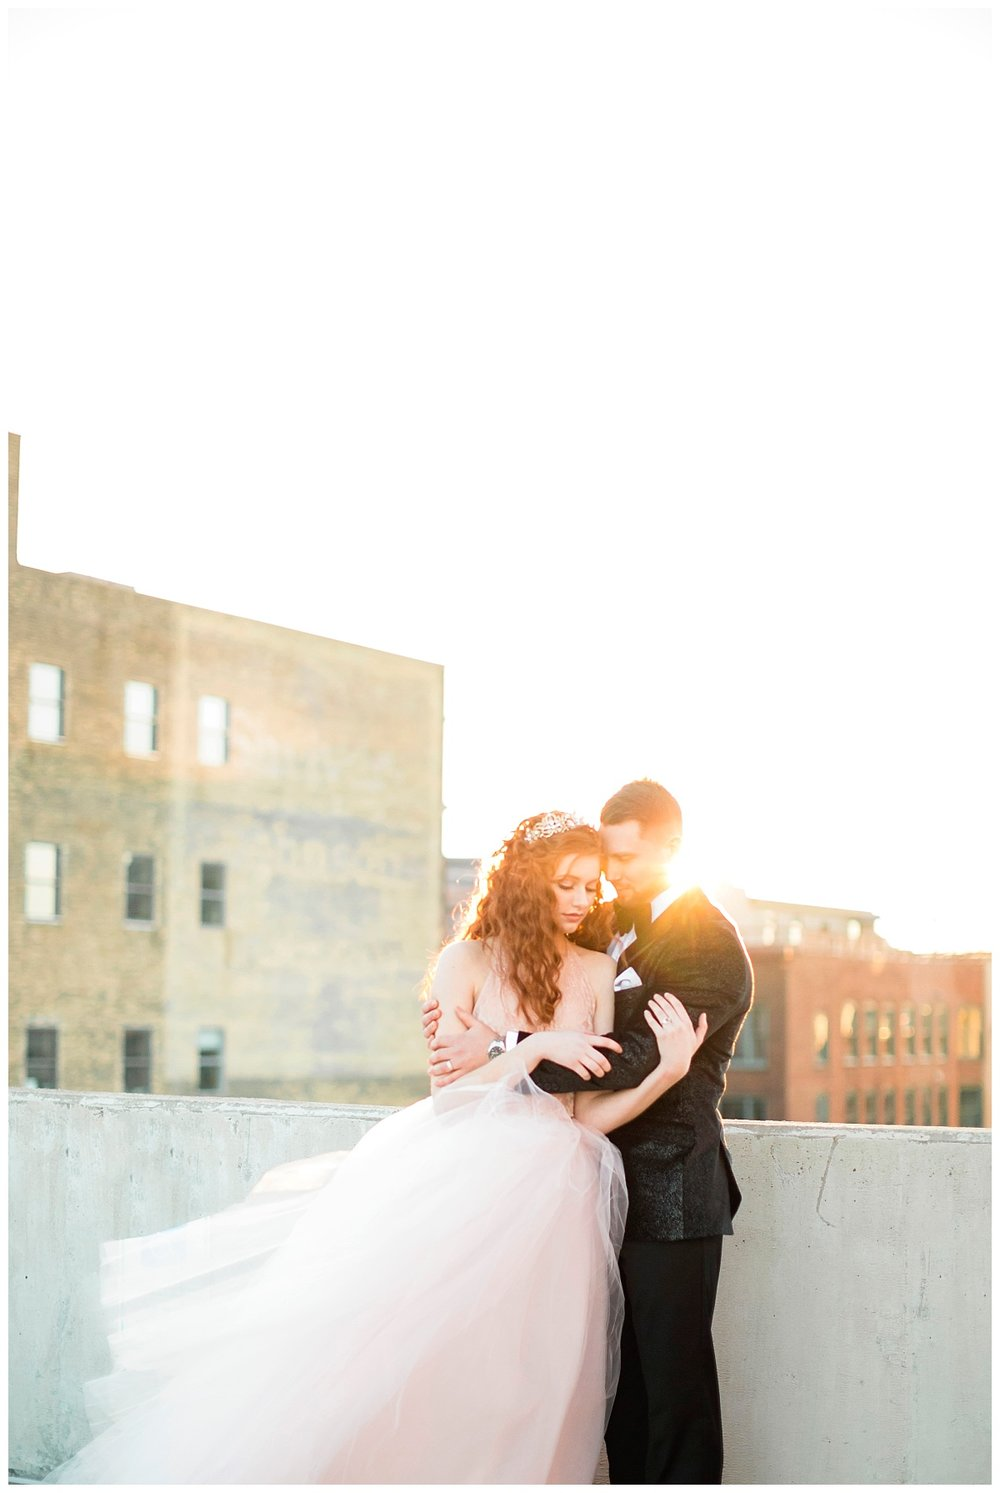 SiouxFallsWedding_Photographer_BethanyMelvinPhotography44.jpg